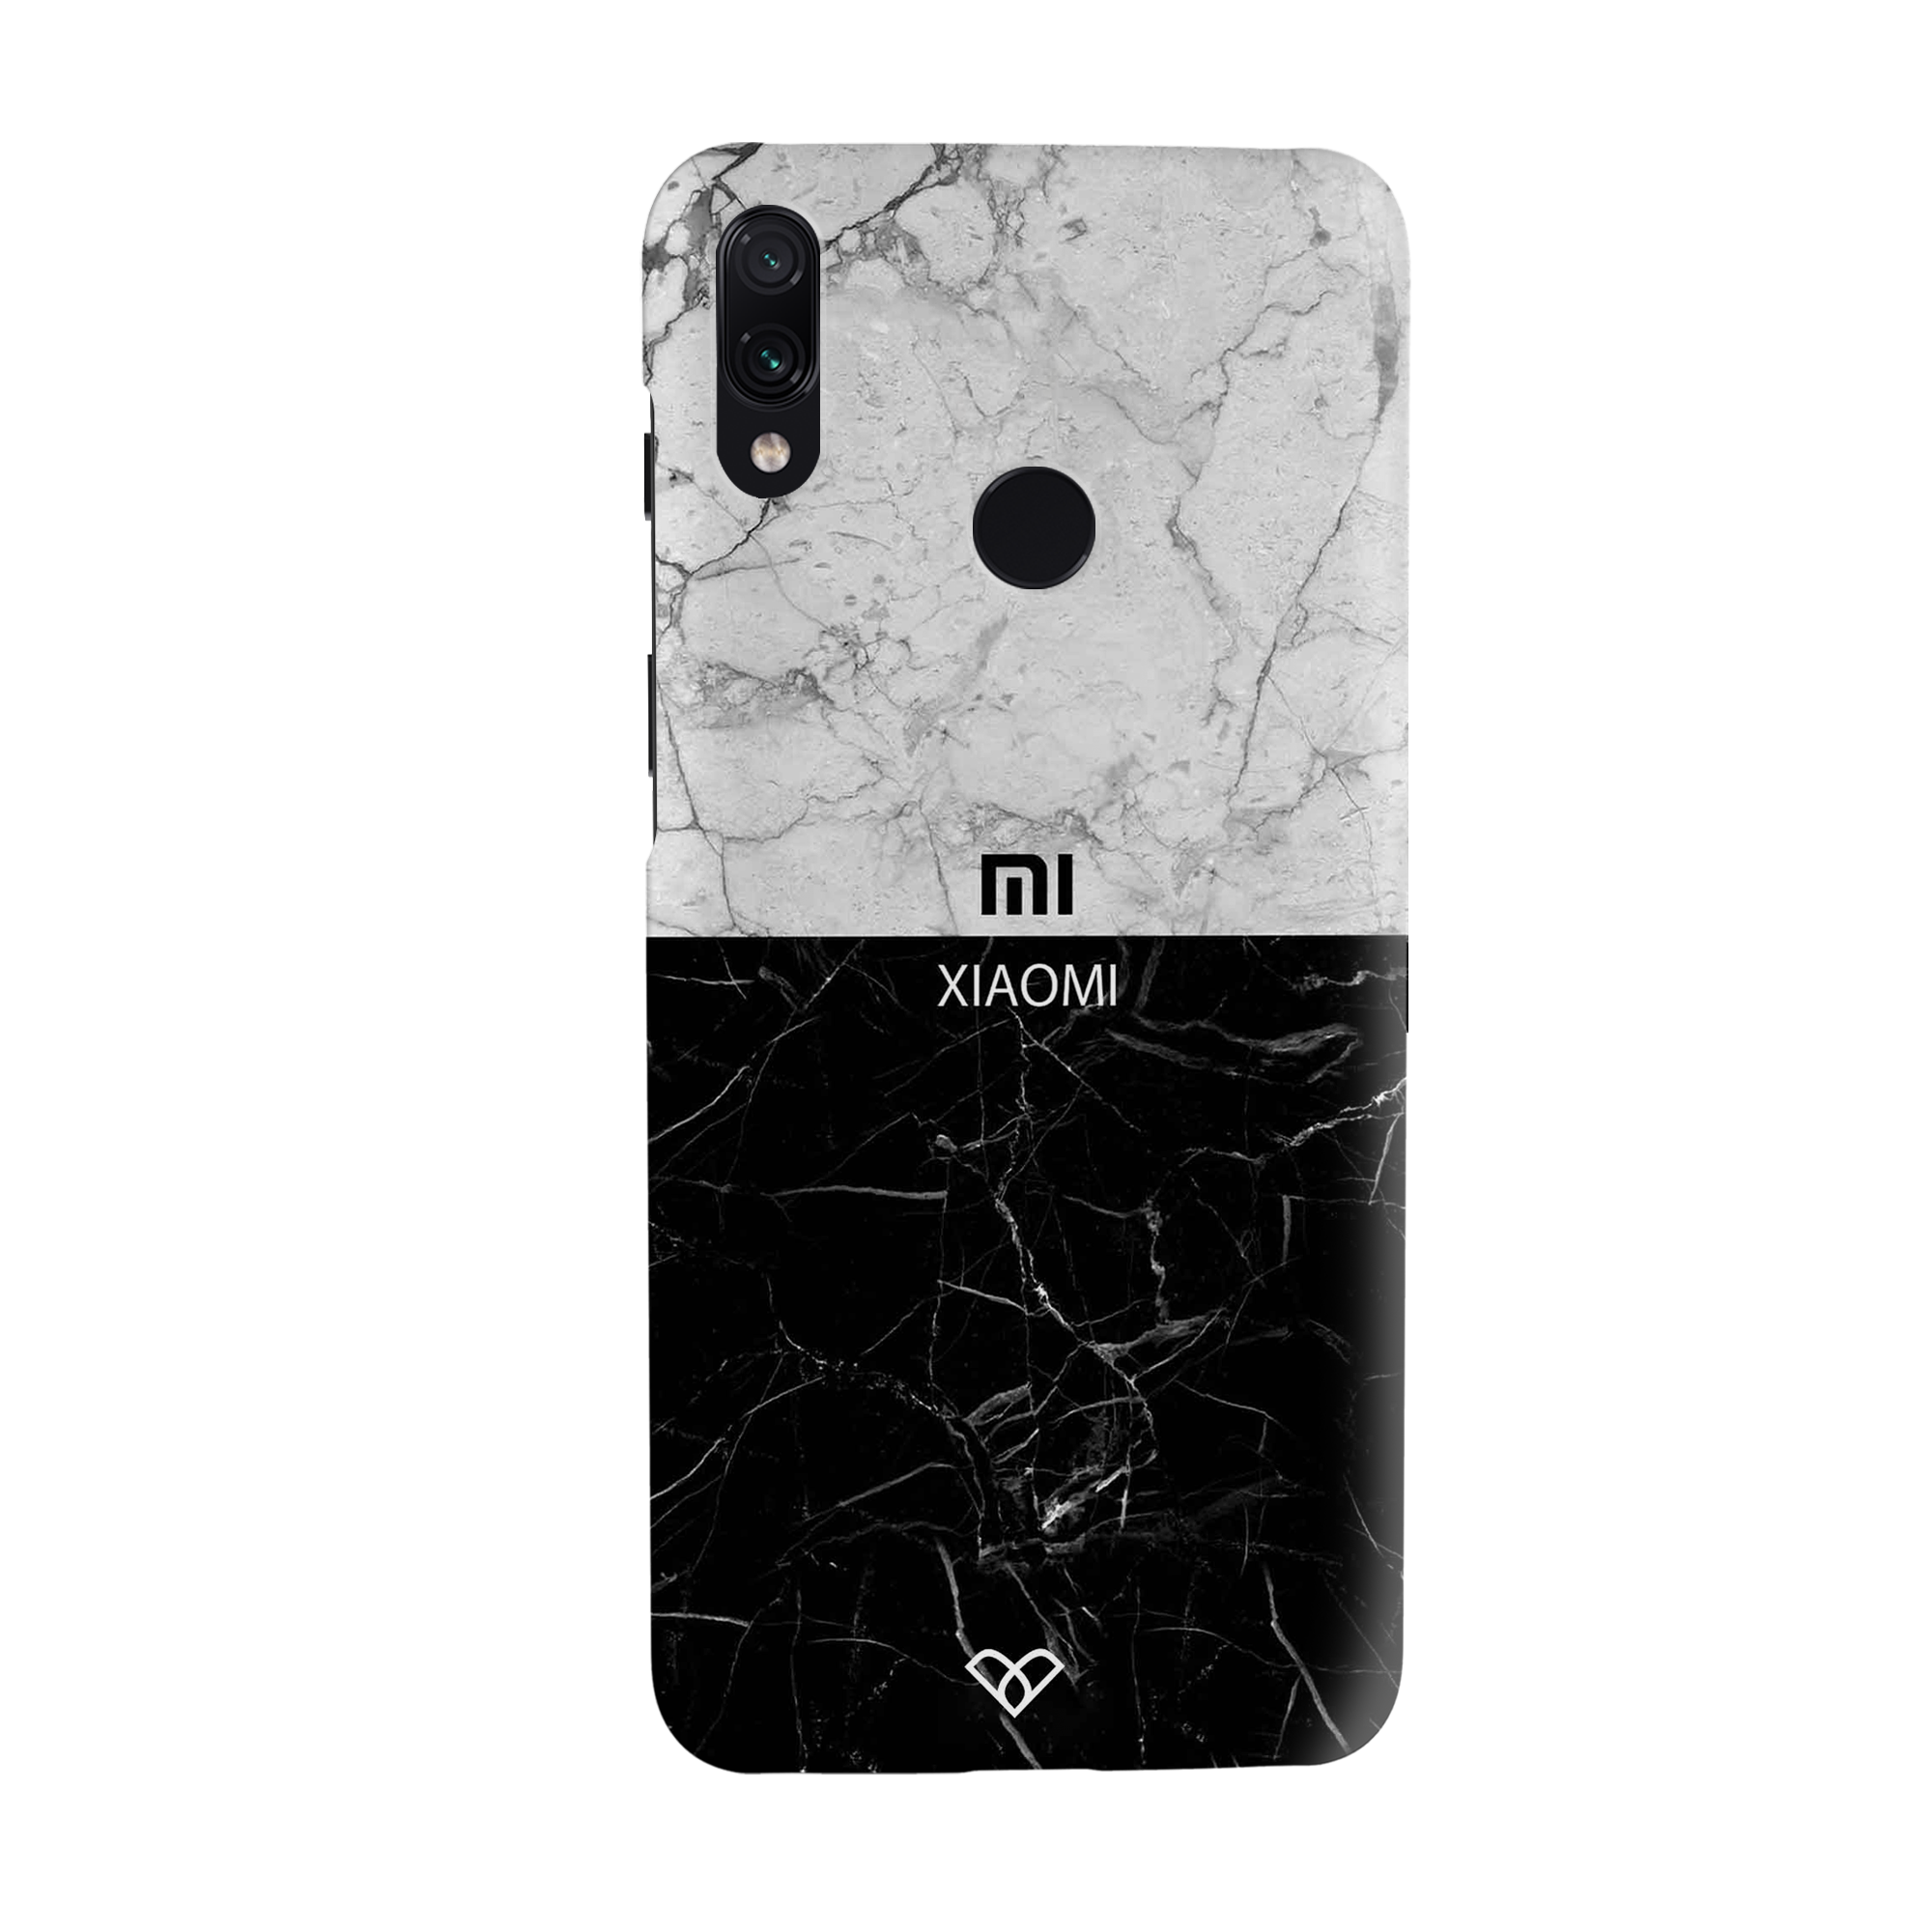 Grey & Black Marble Slim Case And Cover For Redmi Note 7 Pro